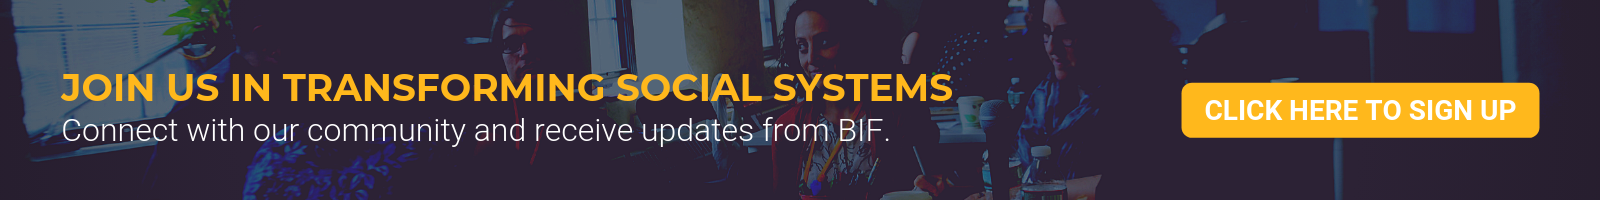 Share Your BIF2018 Insights With Us